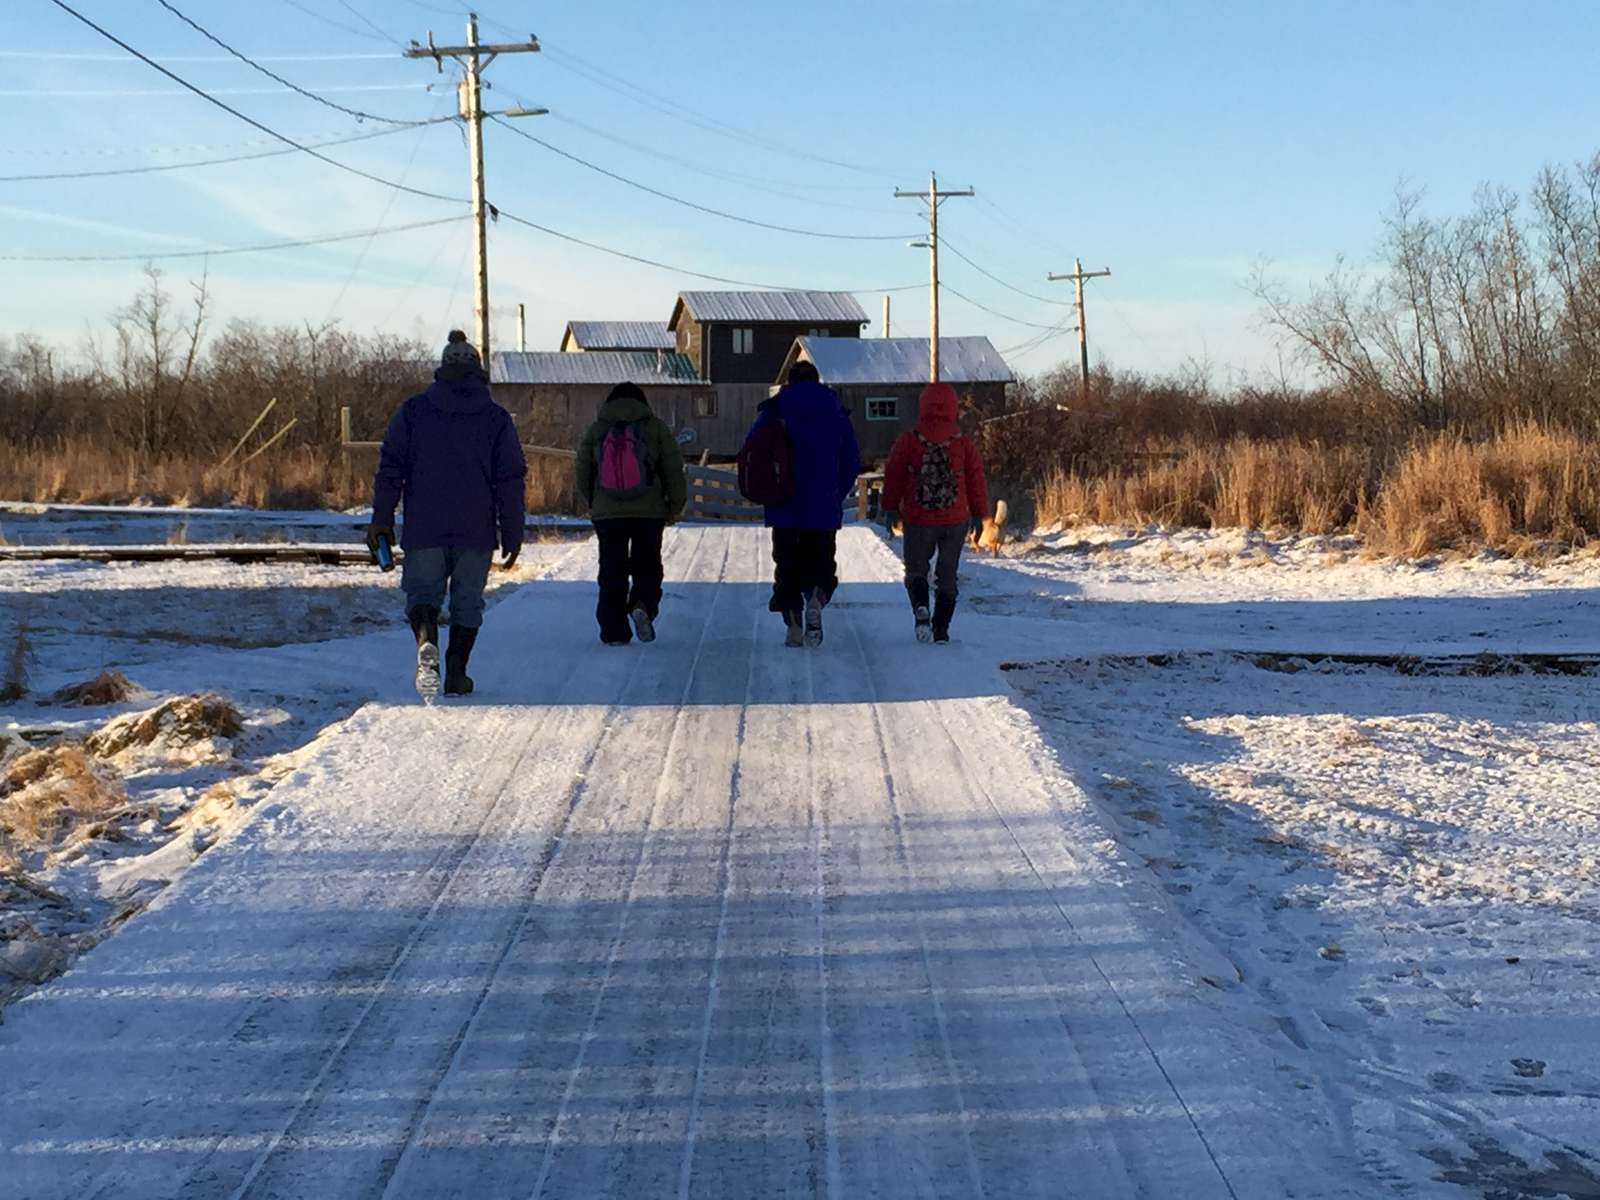 The Calricaraq team walks across the village's wooden sidewalks.